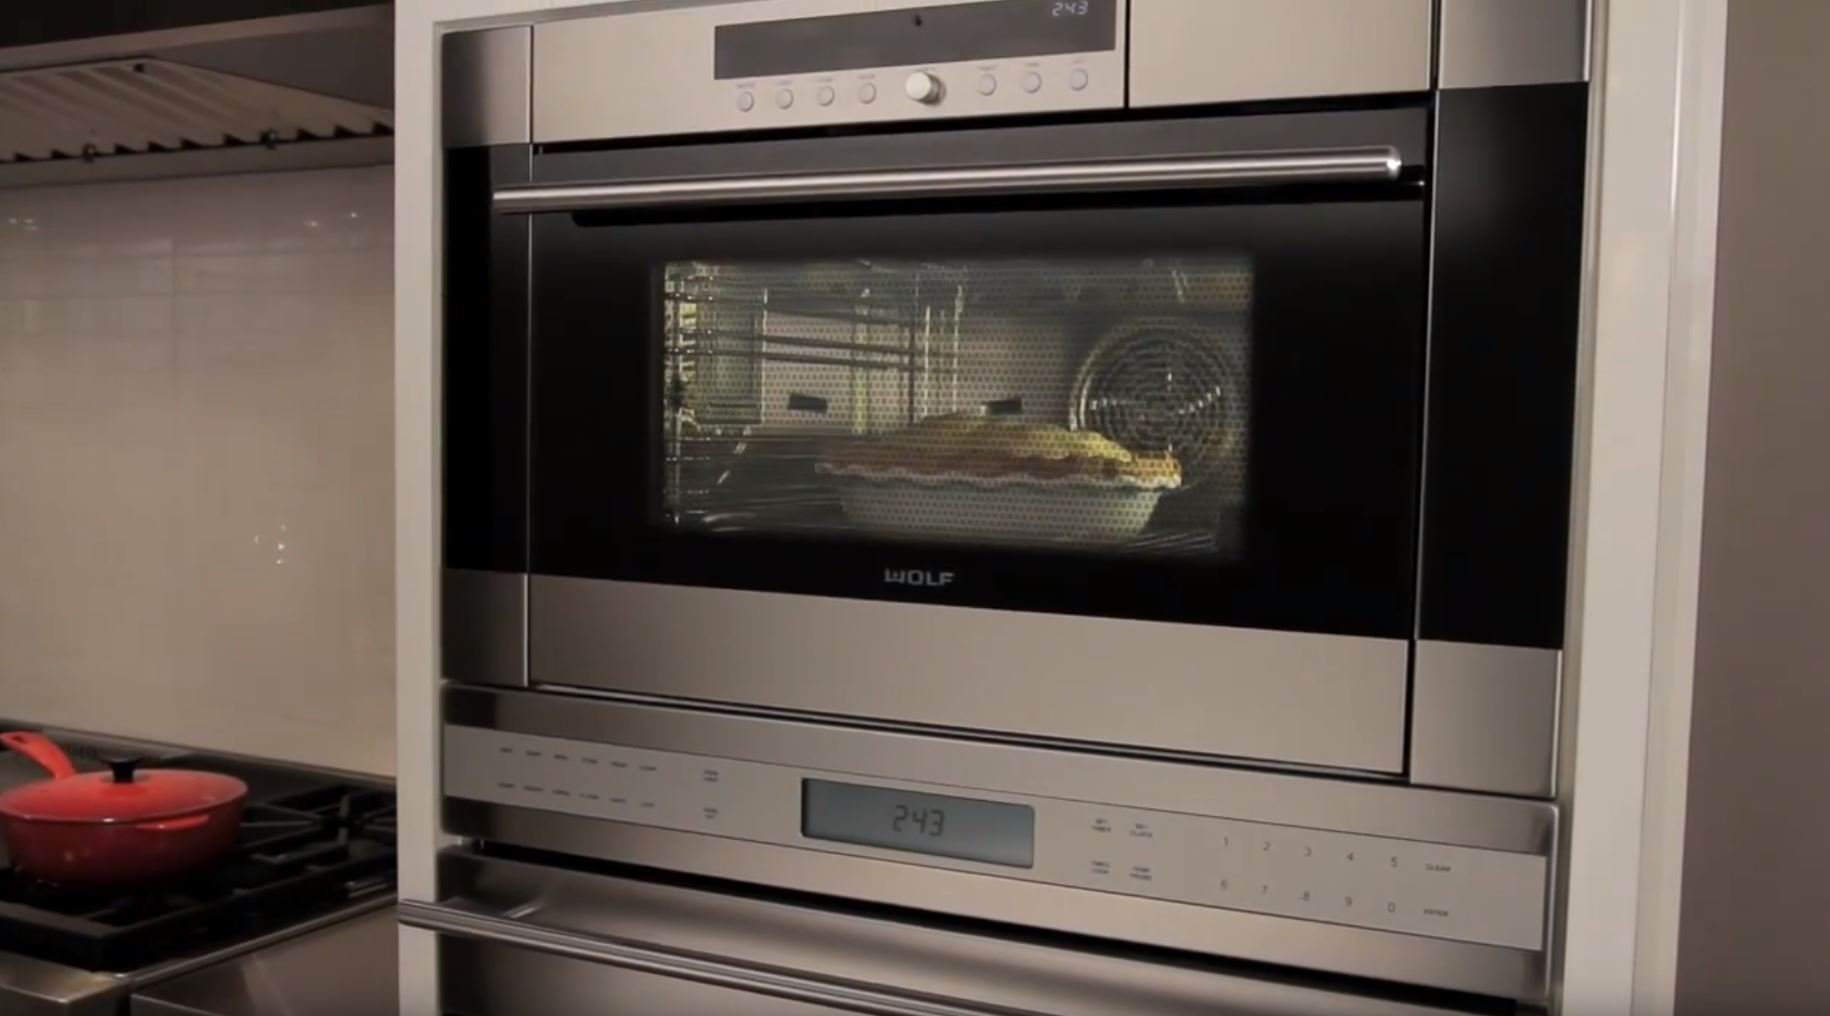 Cooking with the Wolf Convection Steam Oven Video